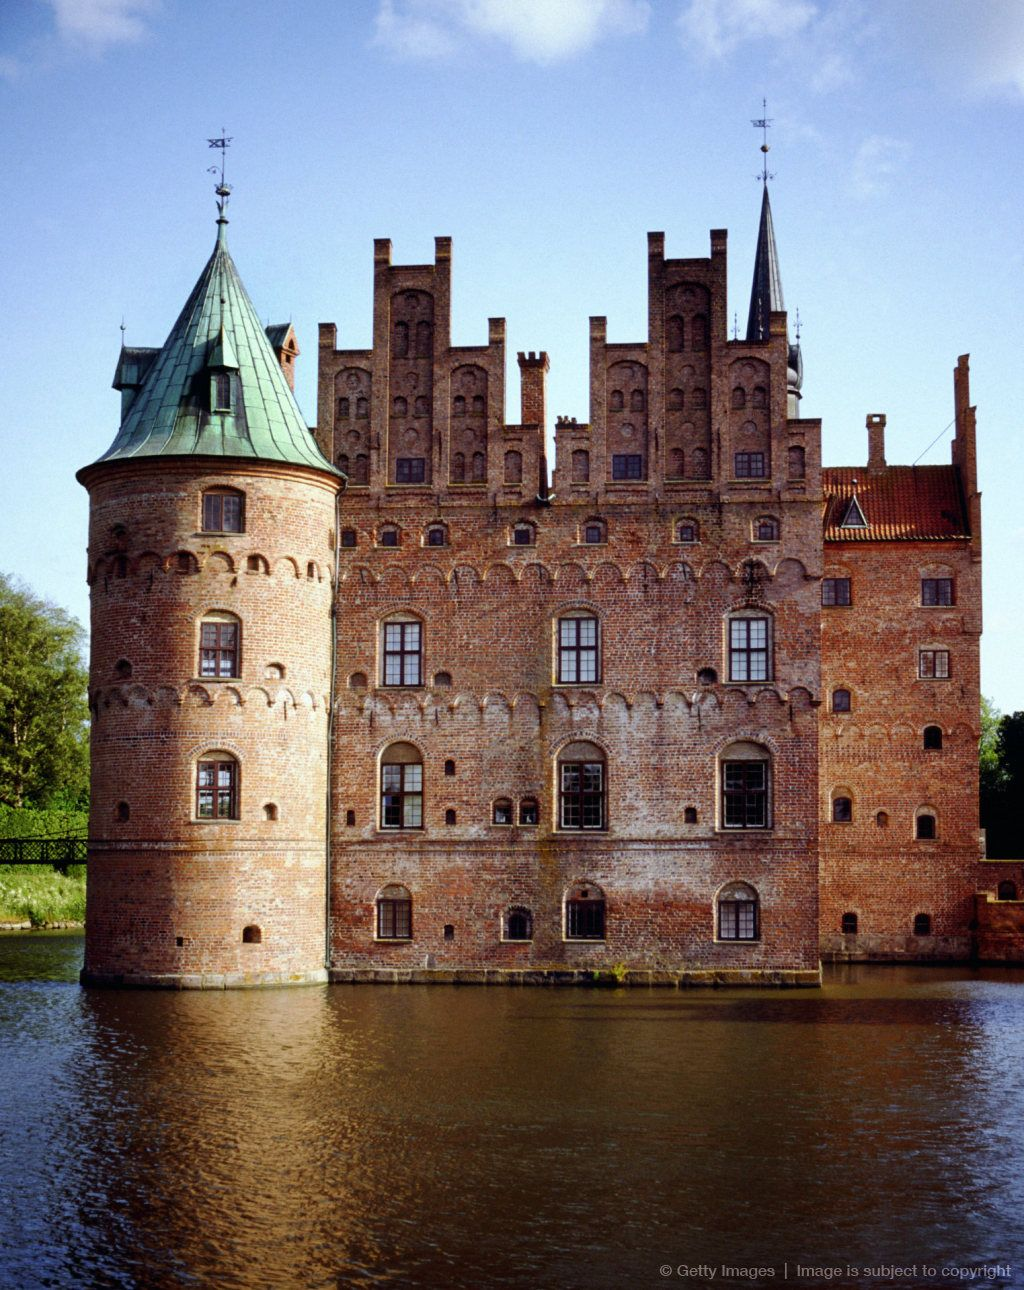 Egeskov Castle in Denmark, I want to go to a castle so badly…